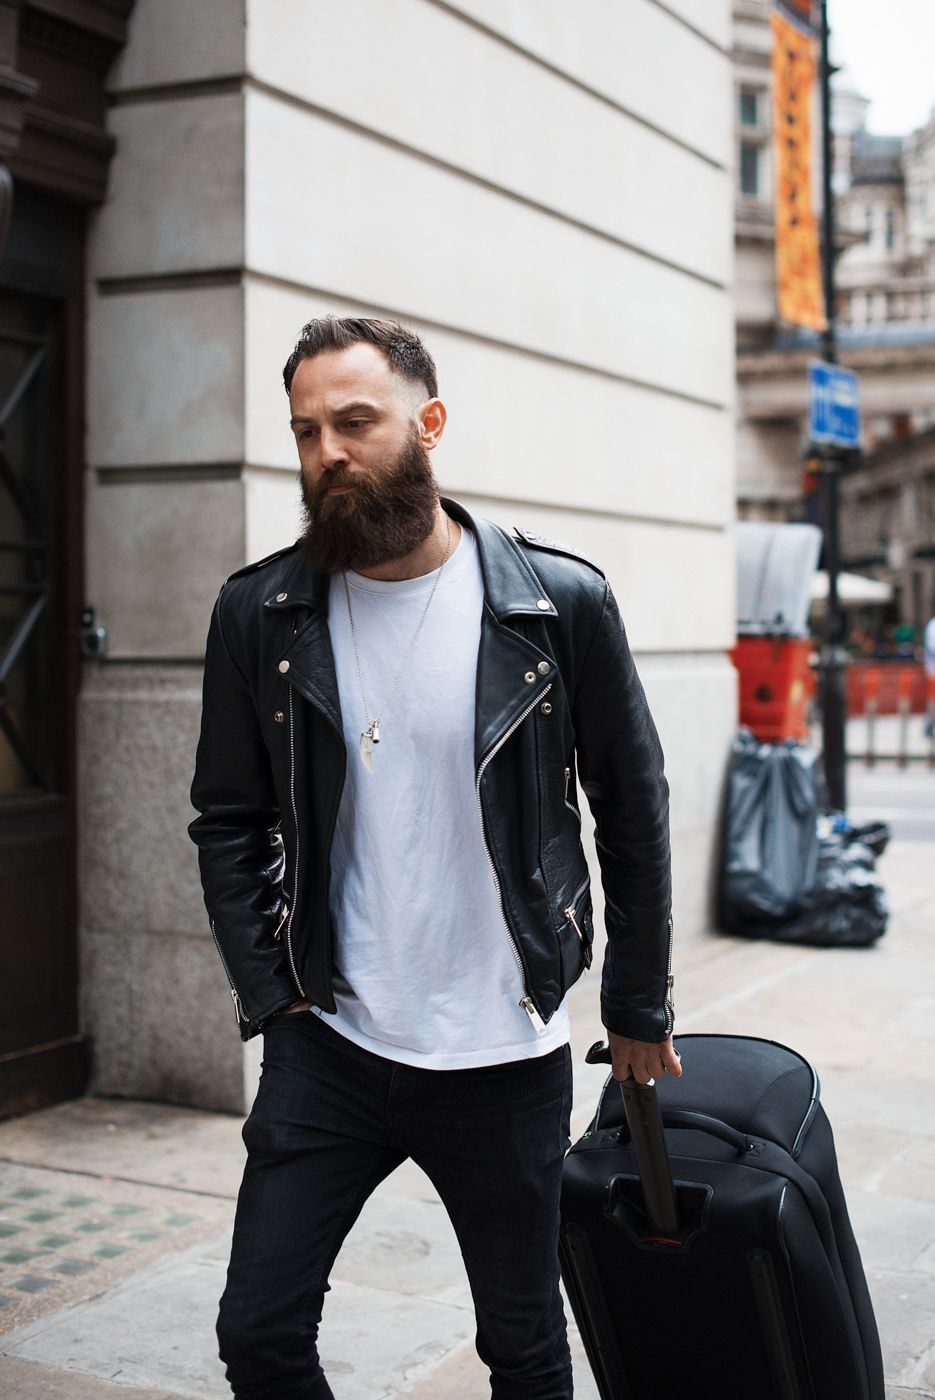 meninthistown: Crew. Similar look: Reclaimed Vintage Leather Biker ...